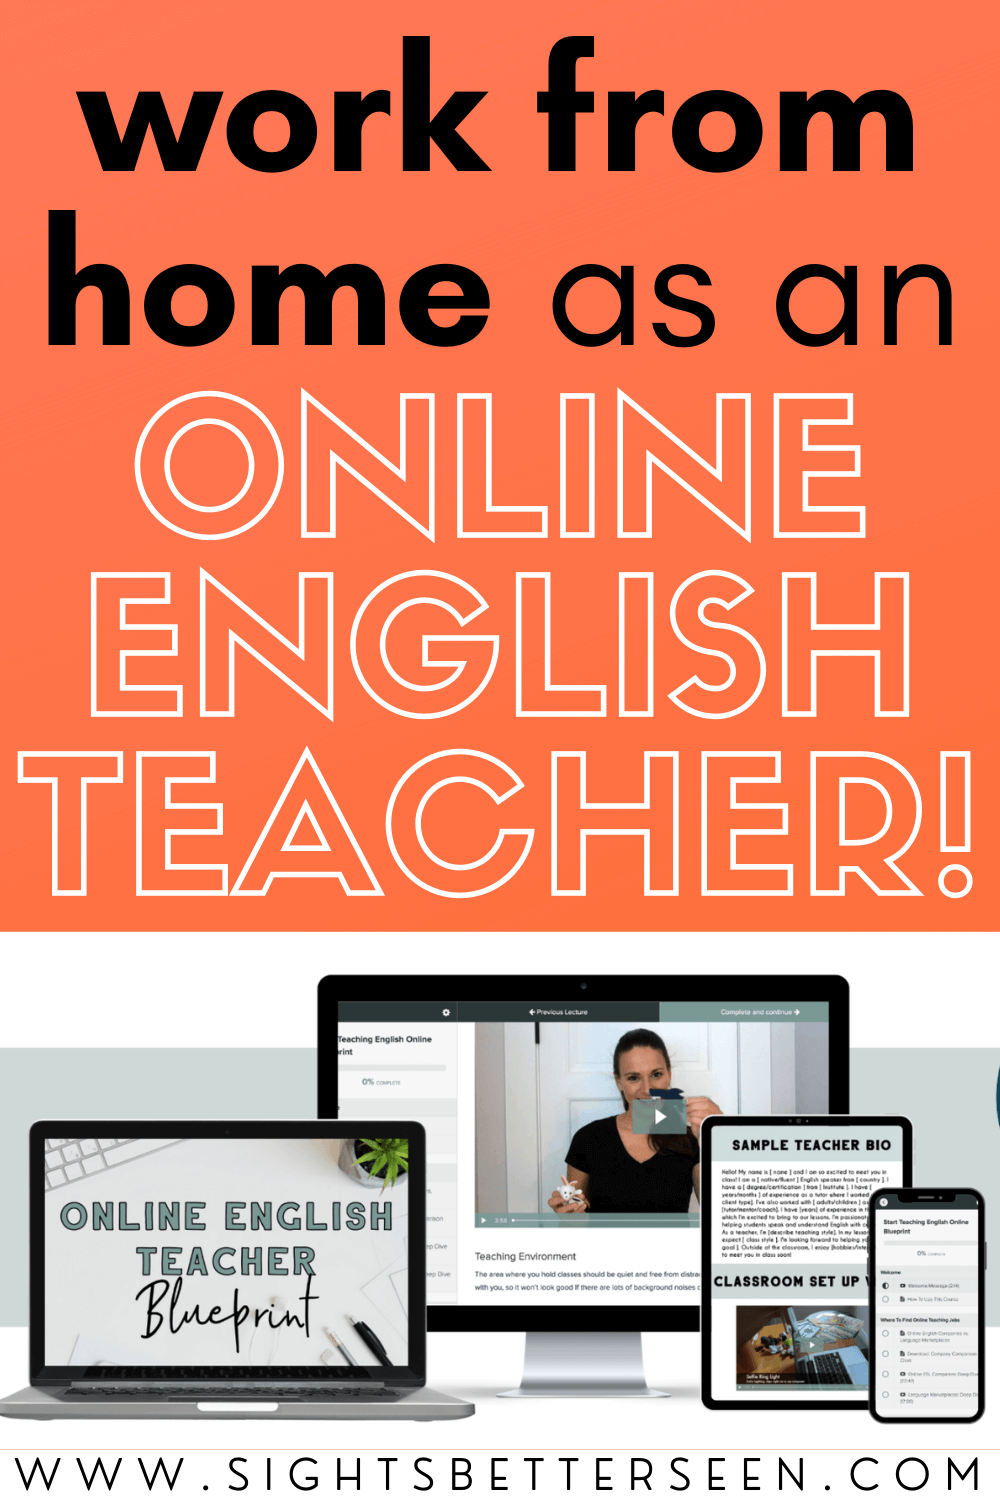 """Text says: """"Work from home as an ONLINE ENGLISH TEACHER!"""" on a bright orange background. Underneath is a photo of teaching materials from the course, Online English Teacher Blueprint."""